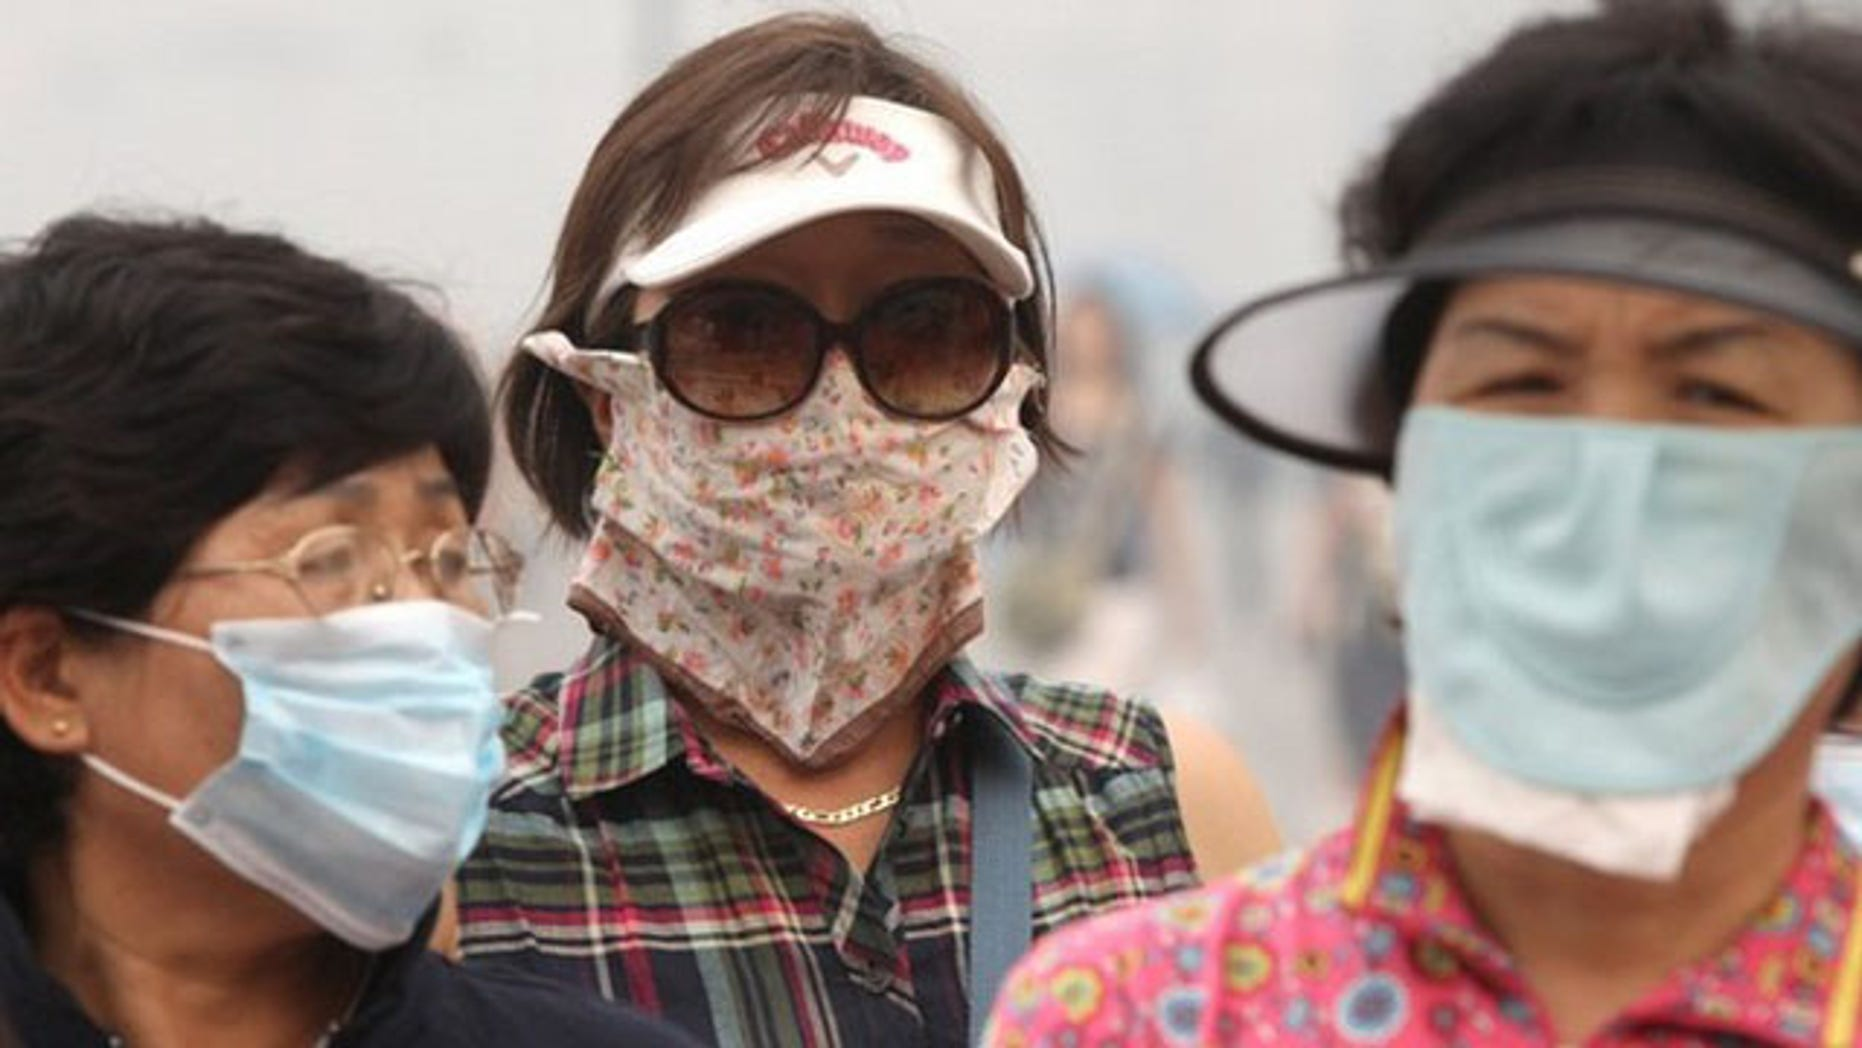 Tourists, wearing masks to protect themselves from the smell of heavy smog caused by peat fires in nearby forests, walk in central Moscow August 9, 2010. The death rate in Moscow has doubled as wildfires have blanketed the capital with toxic smoke amid Russia's worst heatwave in over a century, Interfax cited the city's health department chief as saying on Monday (Reuters).